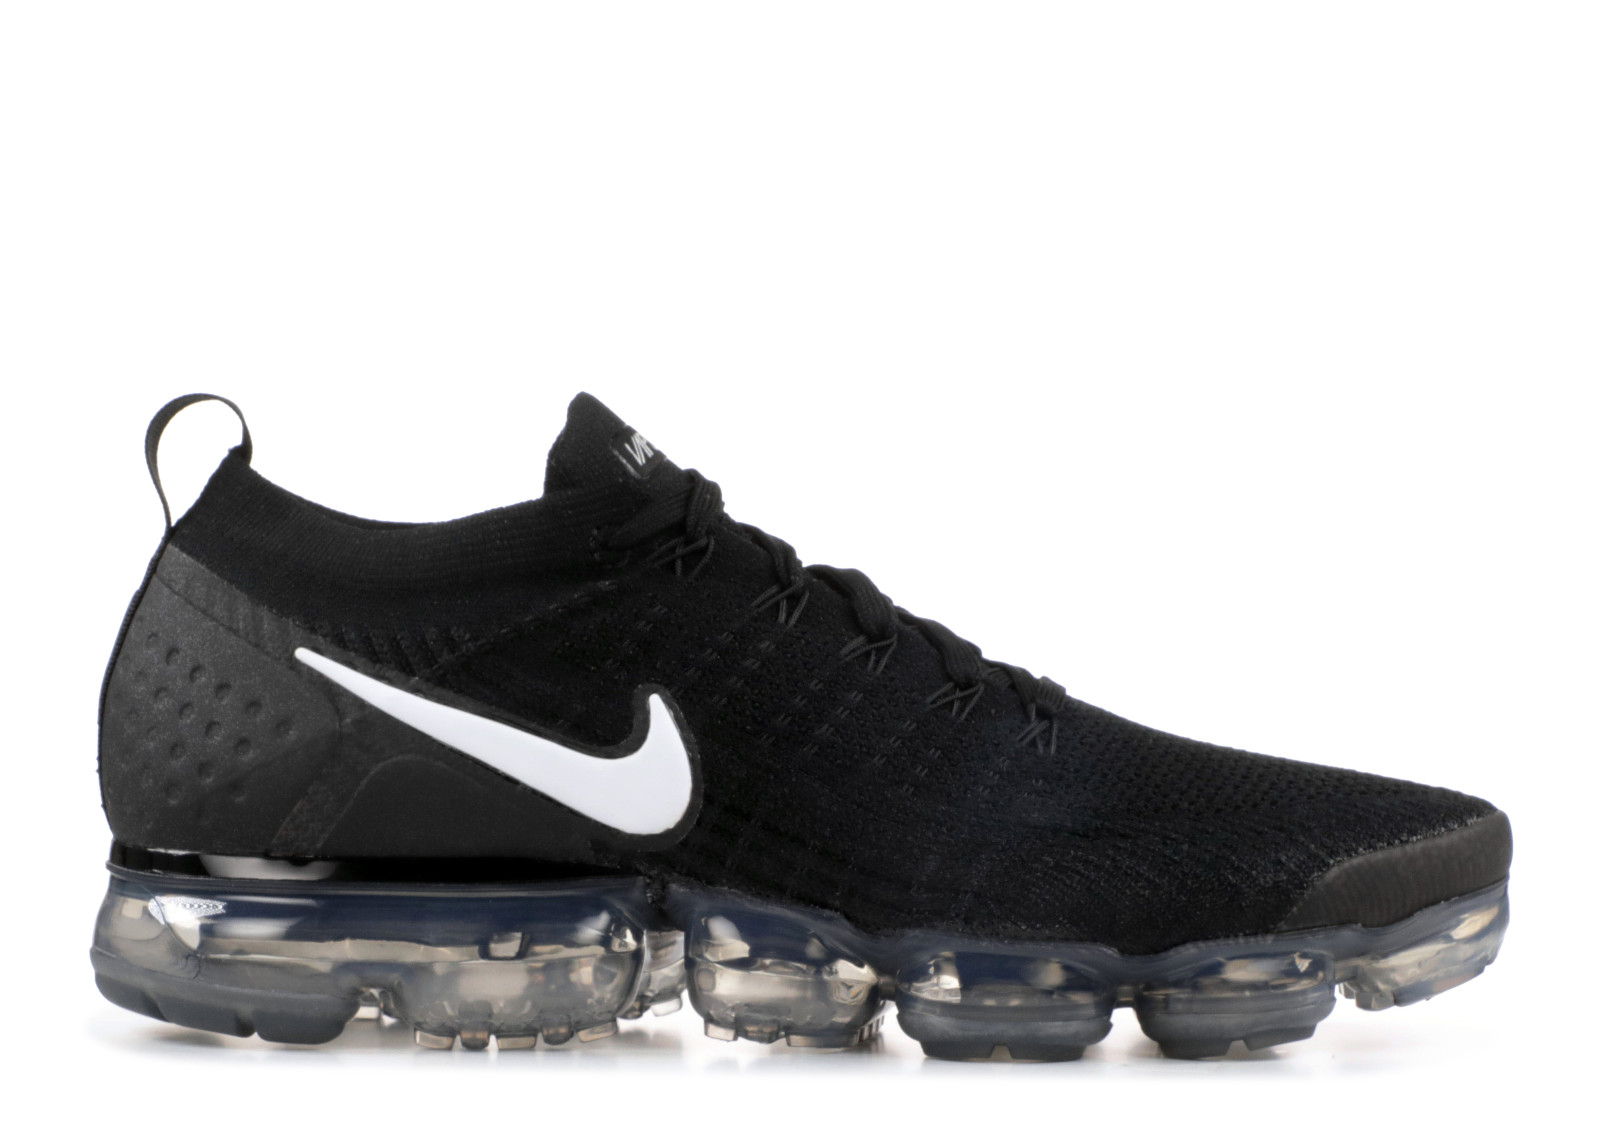 342236100f Nike Air Vapormax Flyknit 2 Black-White-Dark Grey - True Looks